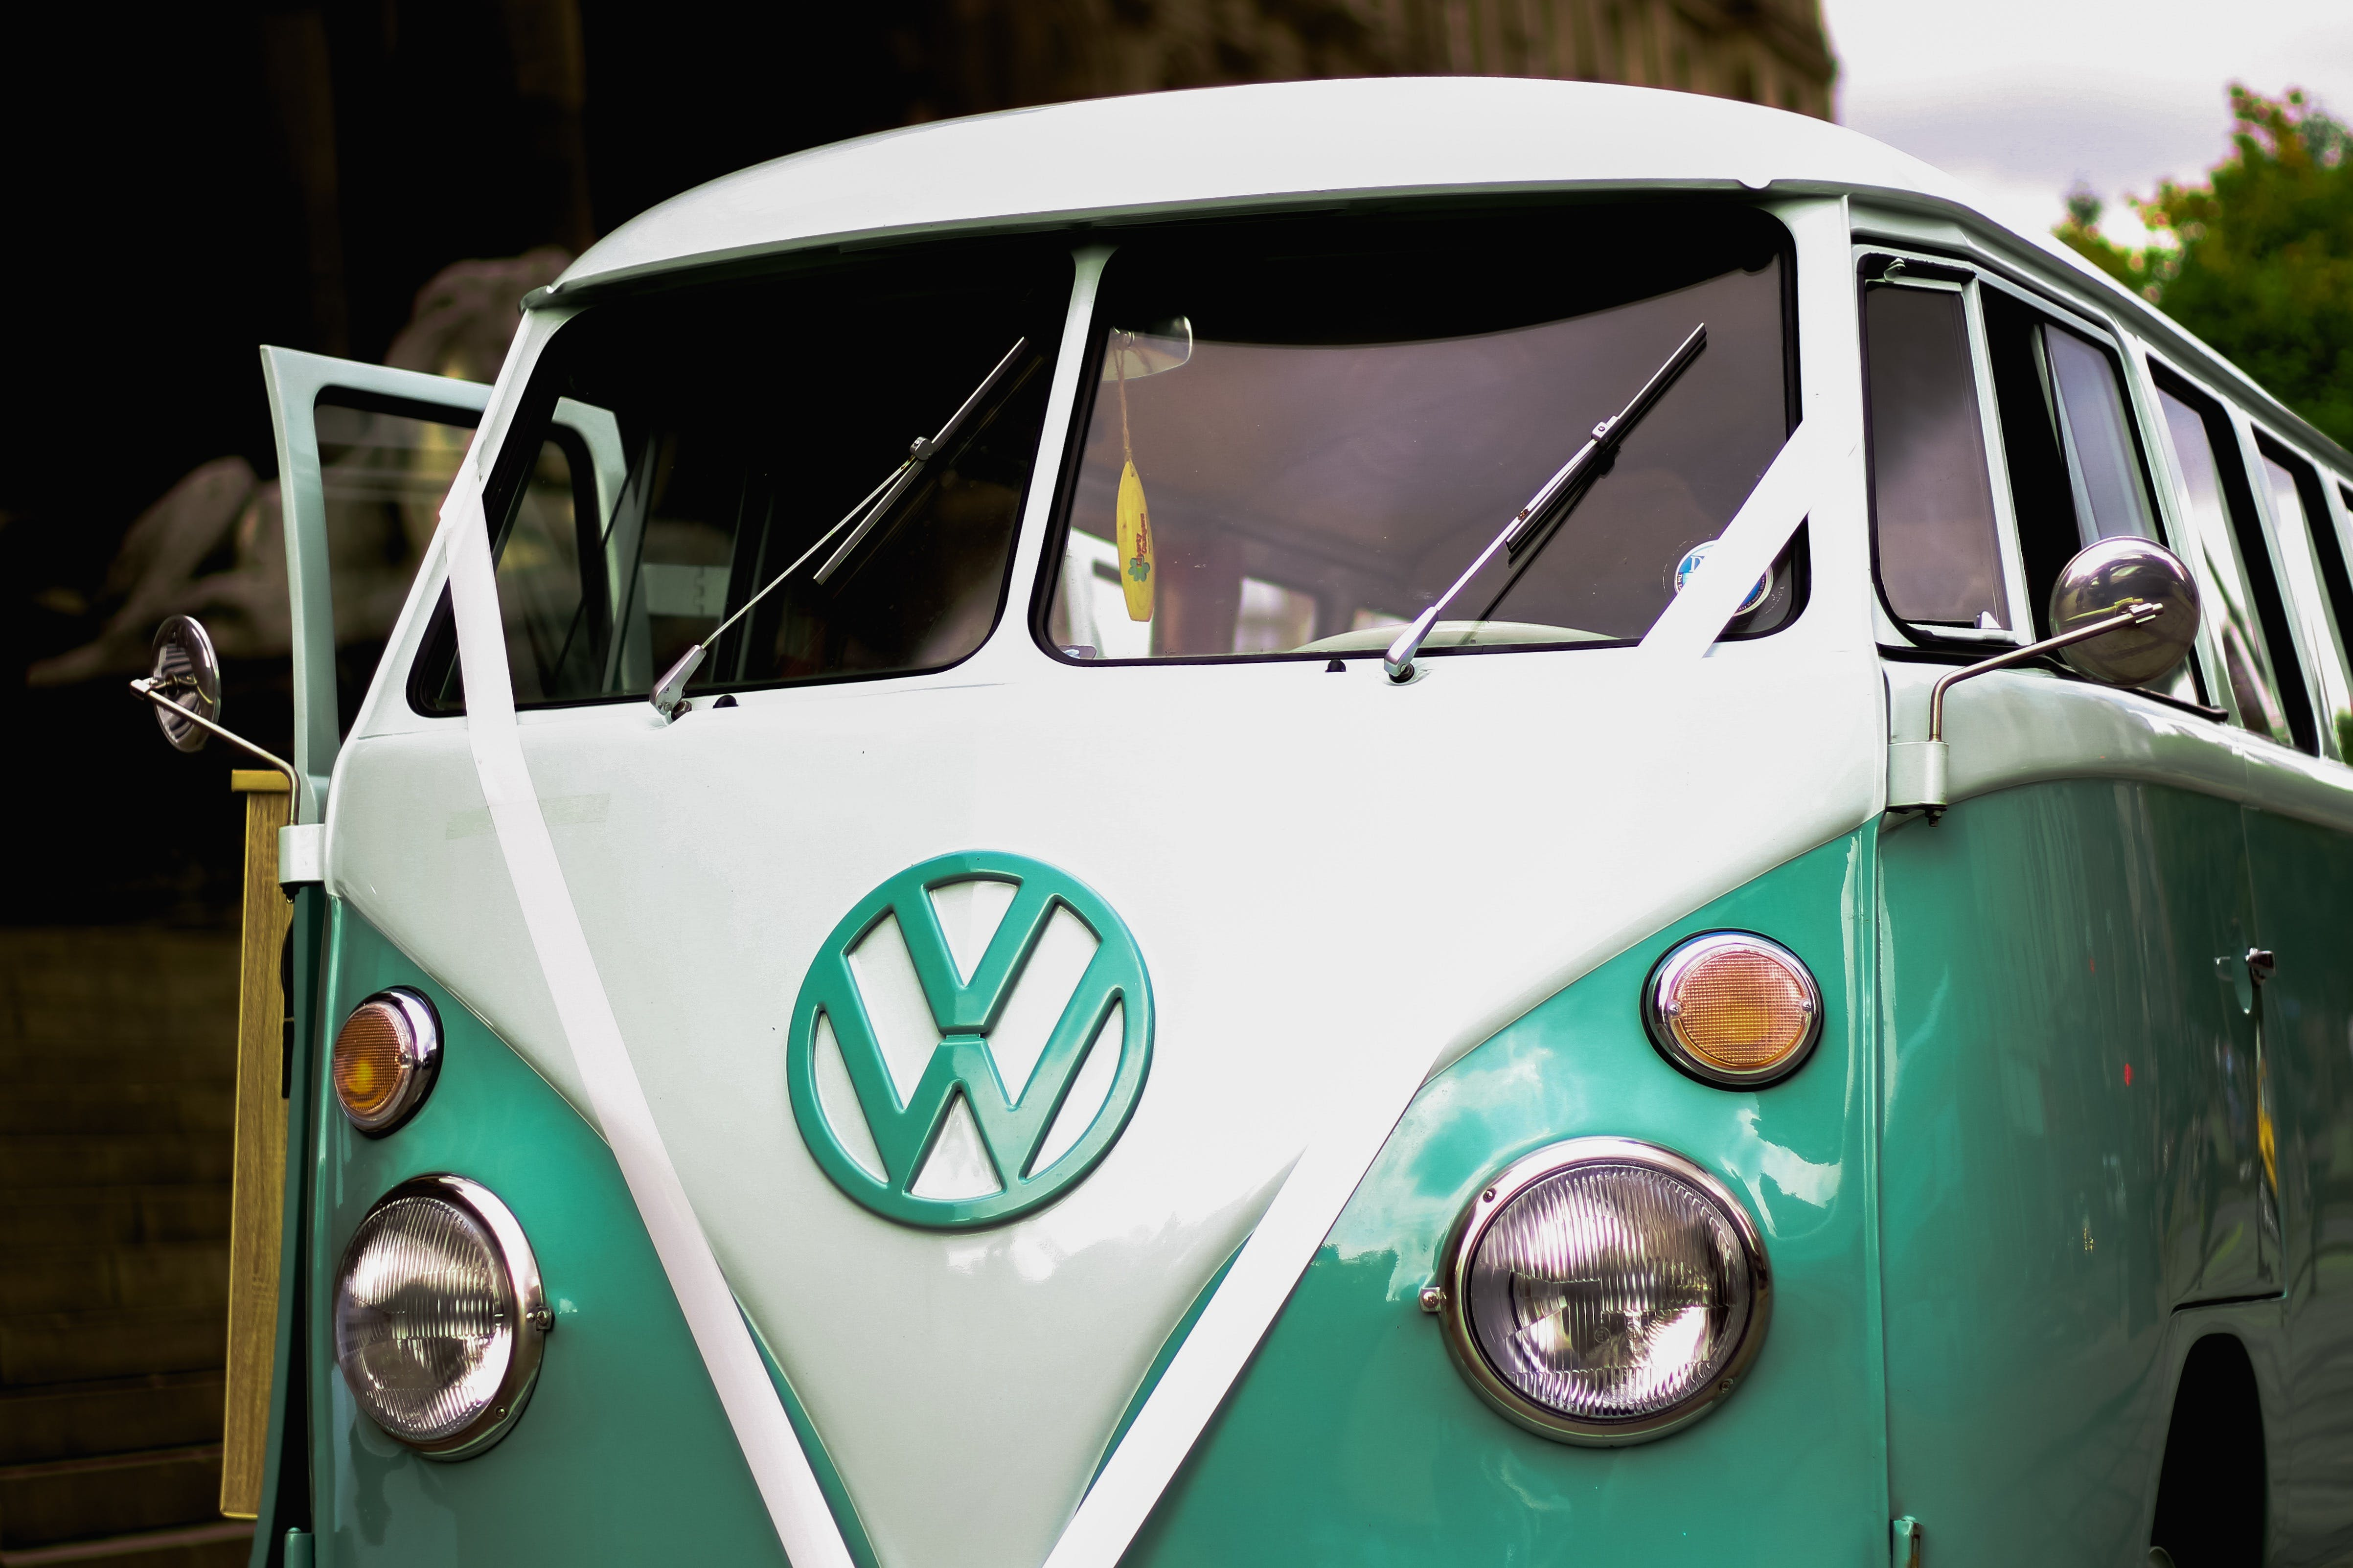 Green and White Volkswagen T1